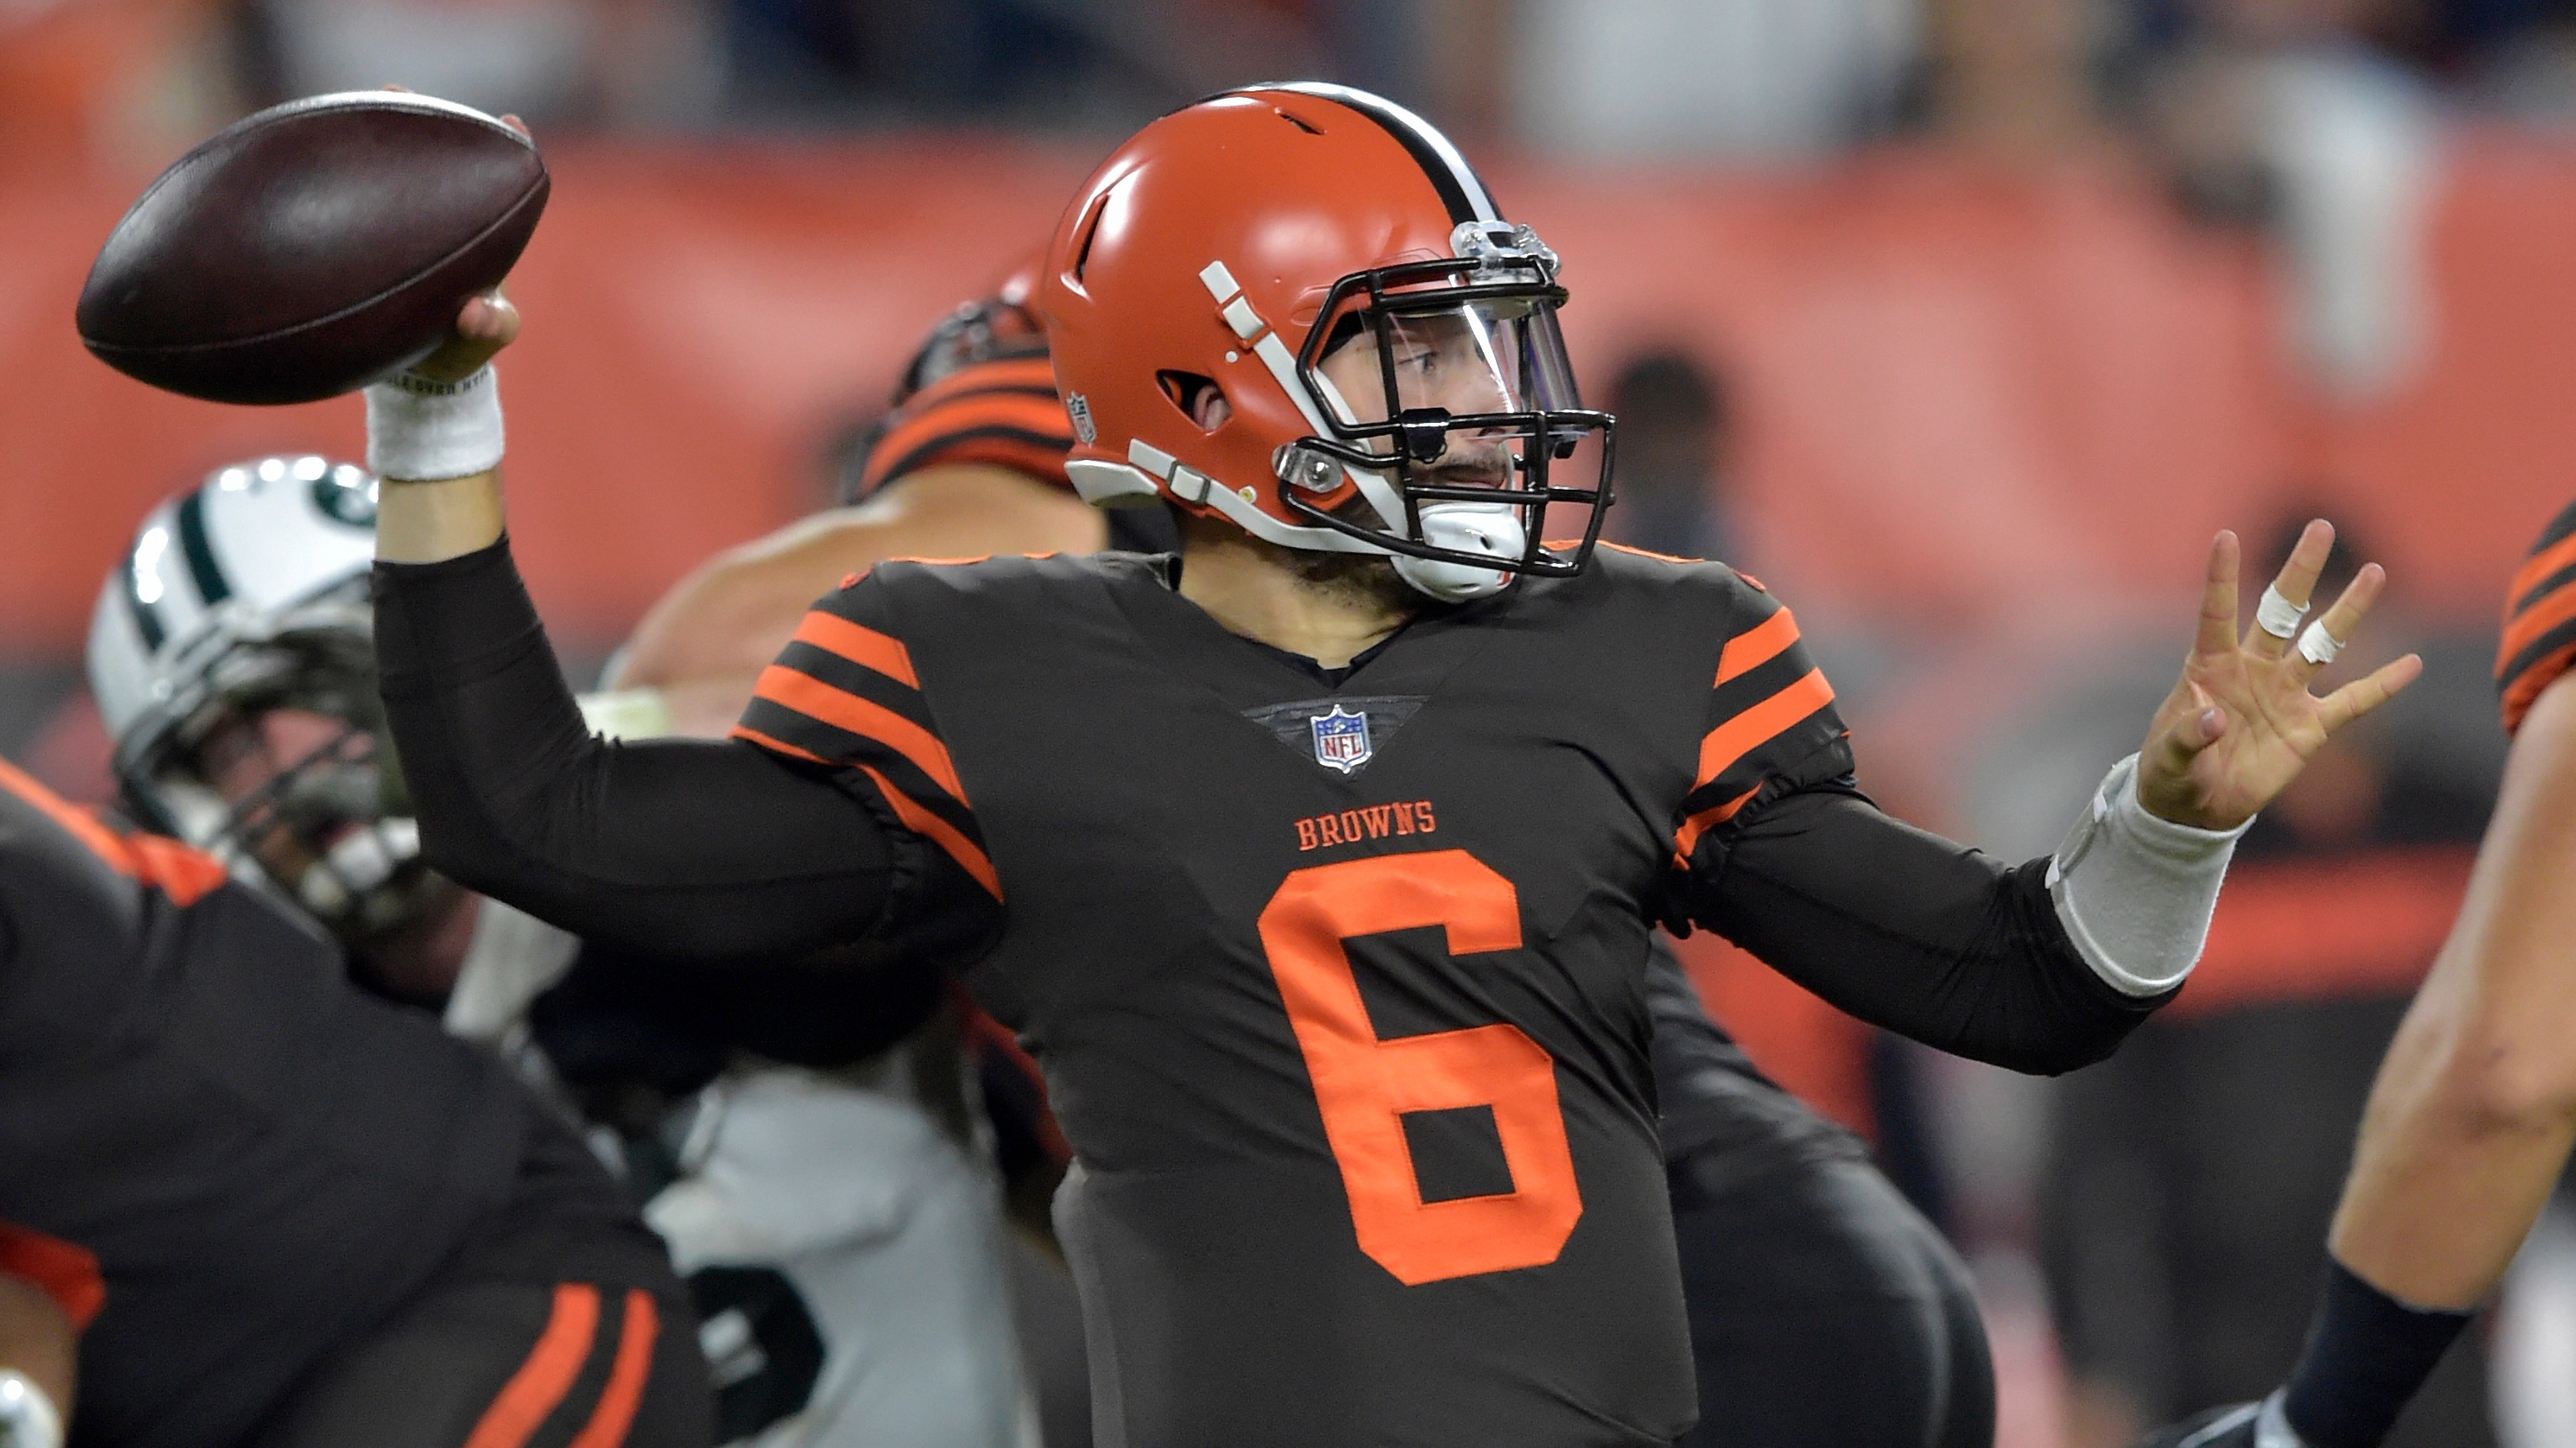 Oddsmakers install Baker Mayfield as prohibitive favorite to start